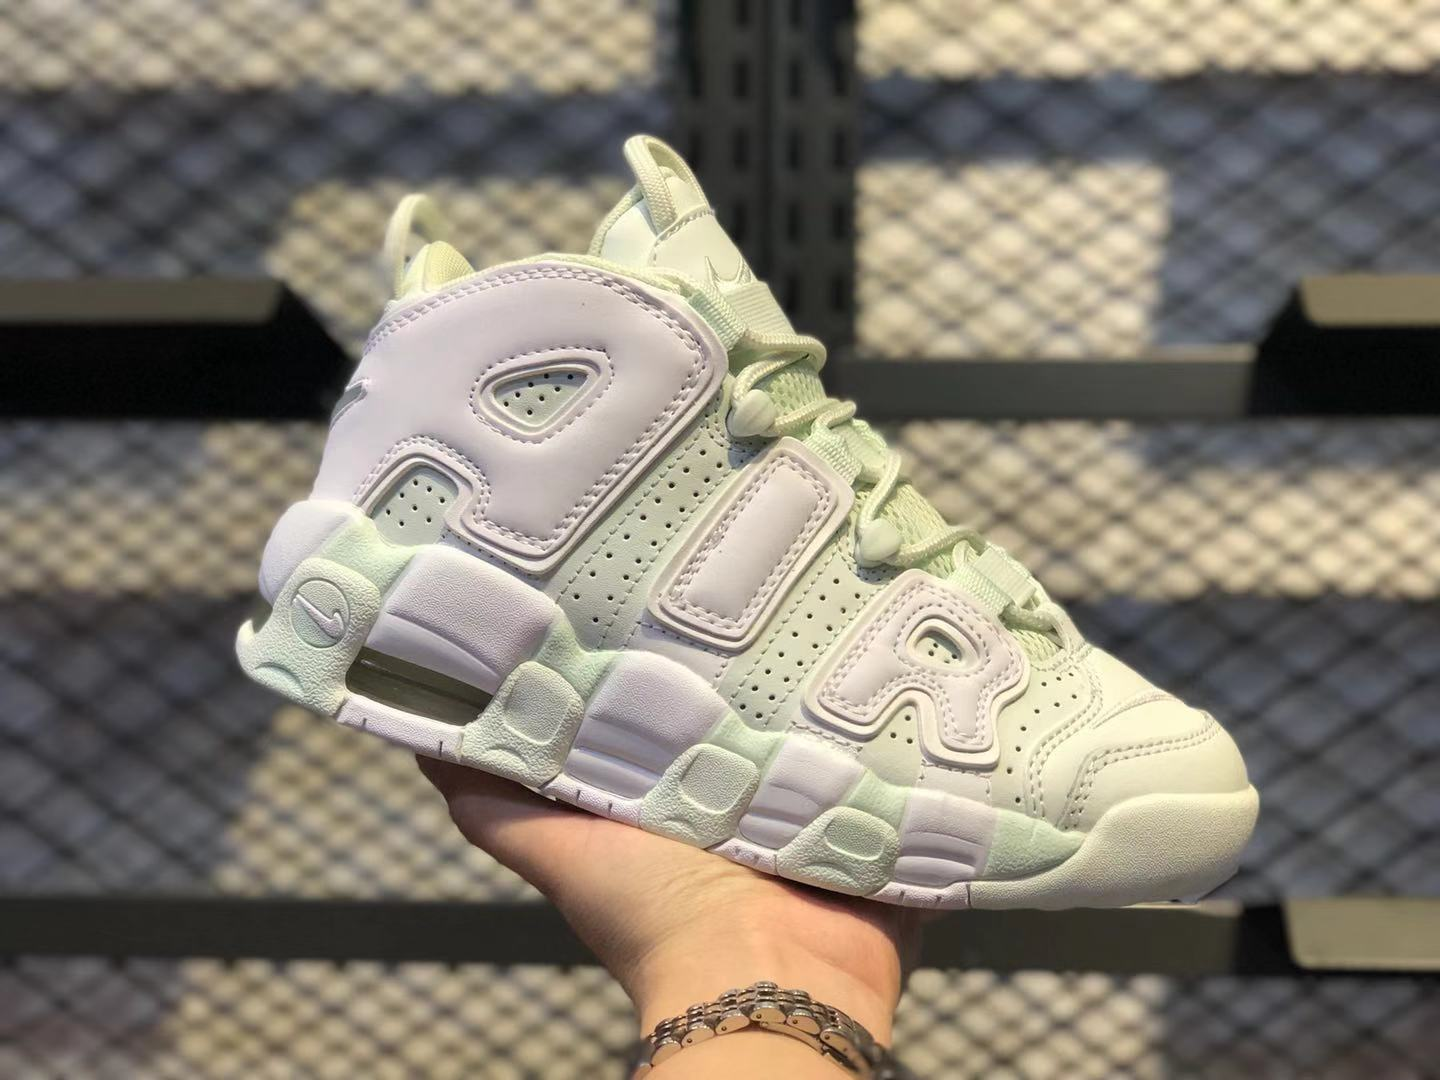 Nike Wmns Air More Uptempo Barely Green/White High Quality Sneakers 917593-300